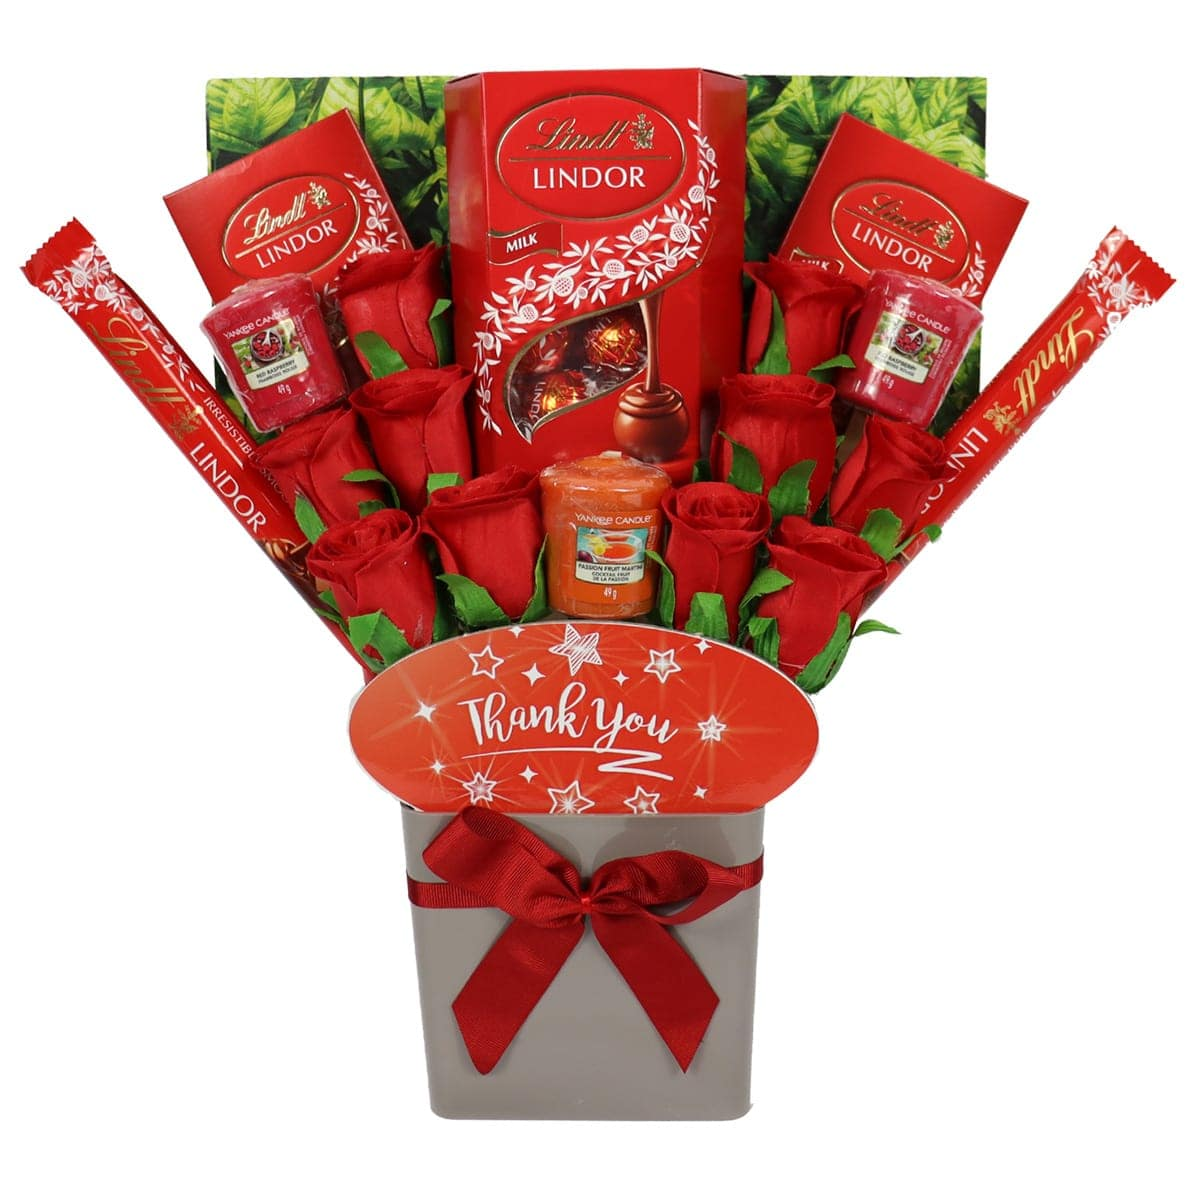 The Thank You Yankee Candle and Red Rose Bouquet